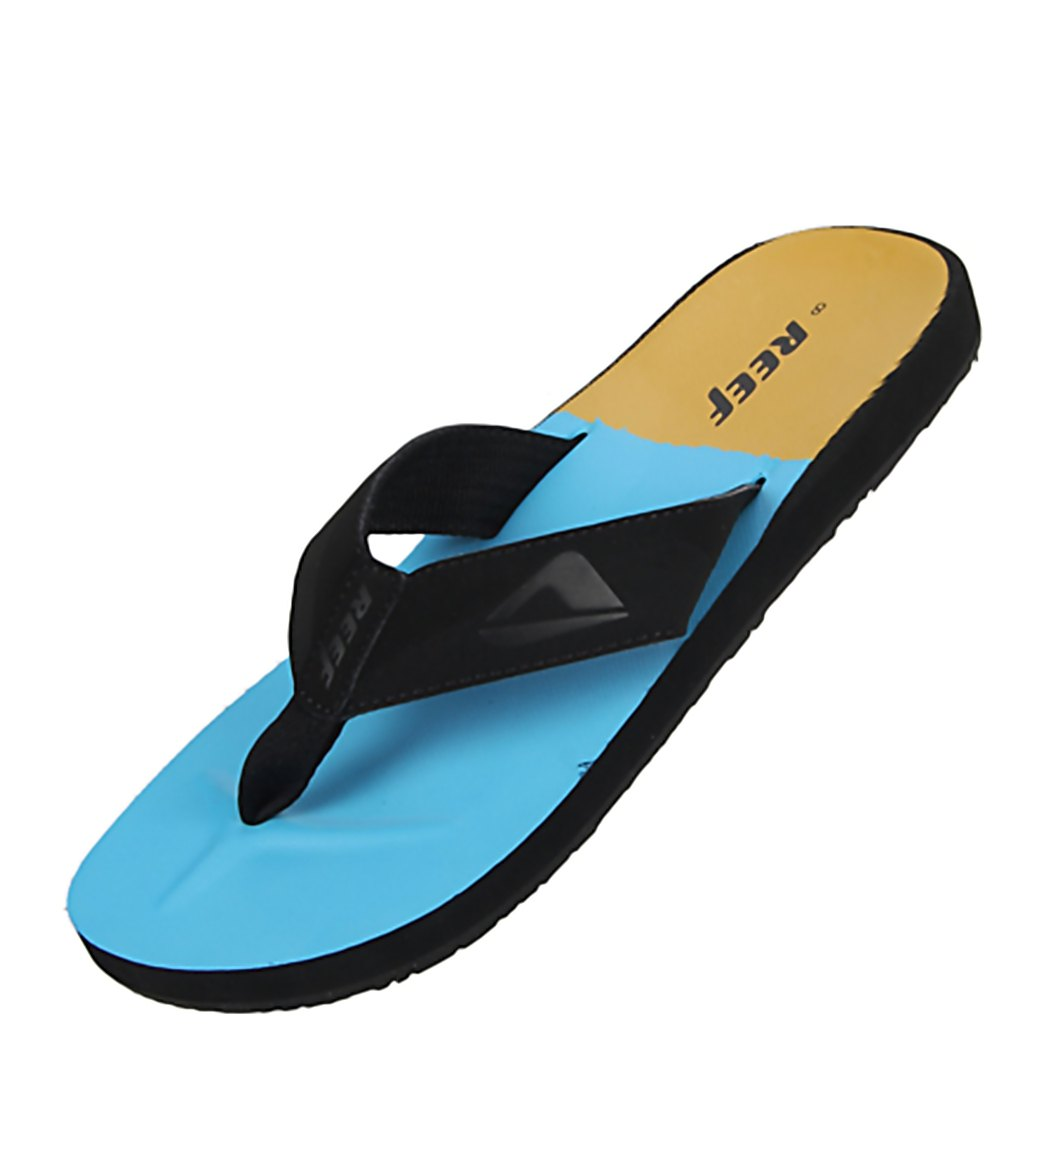 Relevance, Lowest Price, Highest Price, Most Popular, Most Favorites, Newest Showing Sandals For Women filtered to 1 brand.